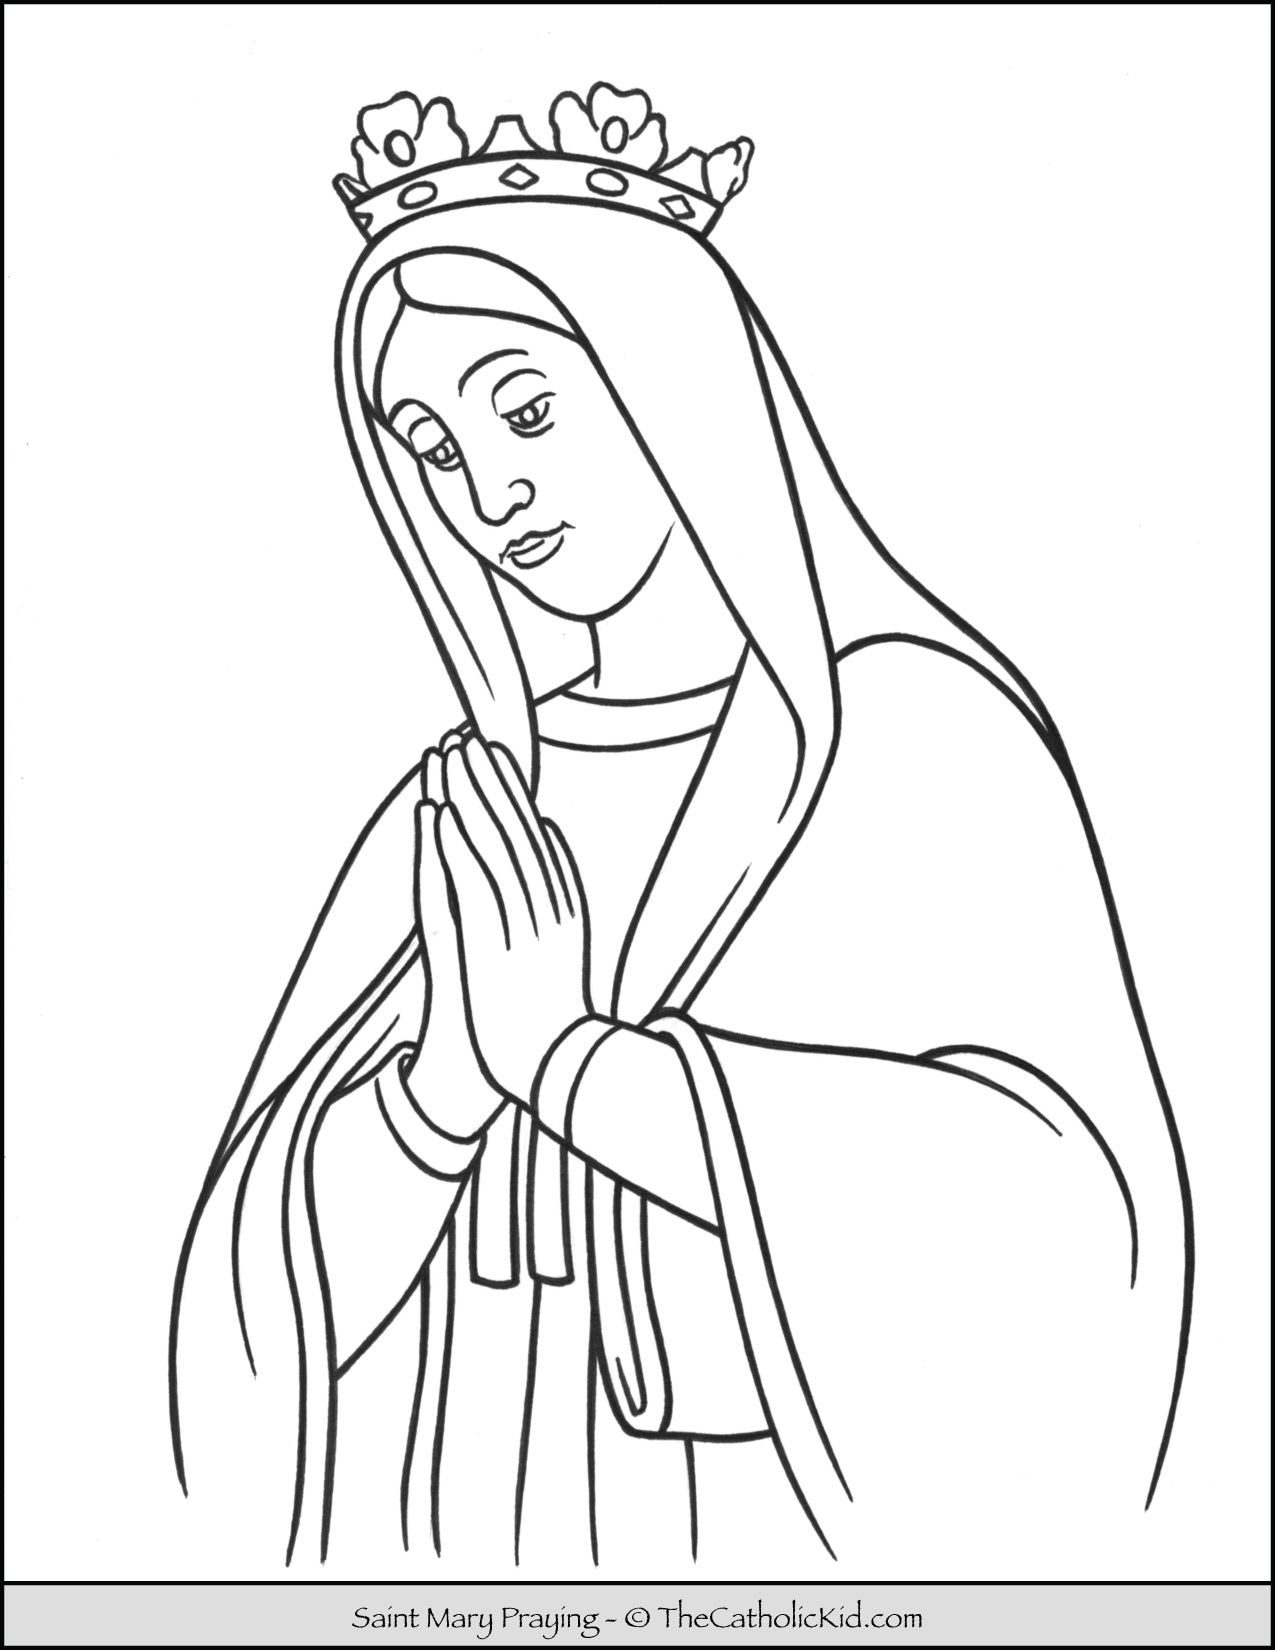 Saint Mary Praying Coloring Page Thecatholickid Com Coloring Pages Saint Coloring Catholic Coloring